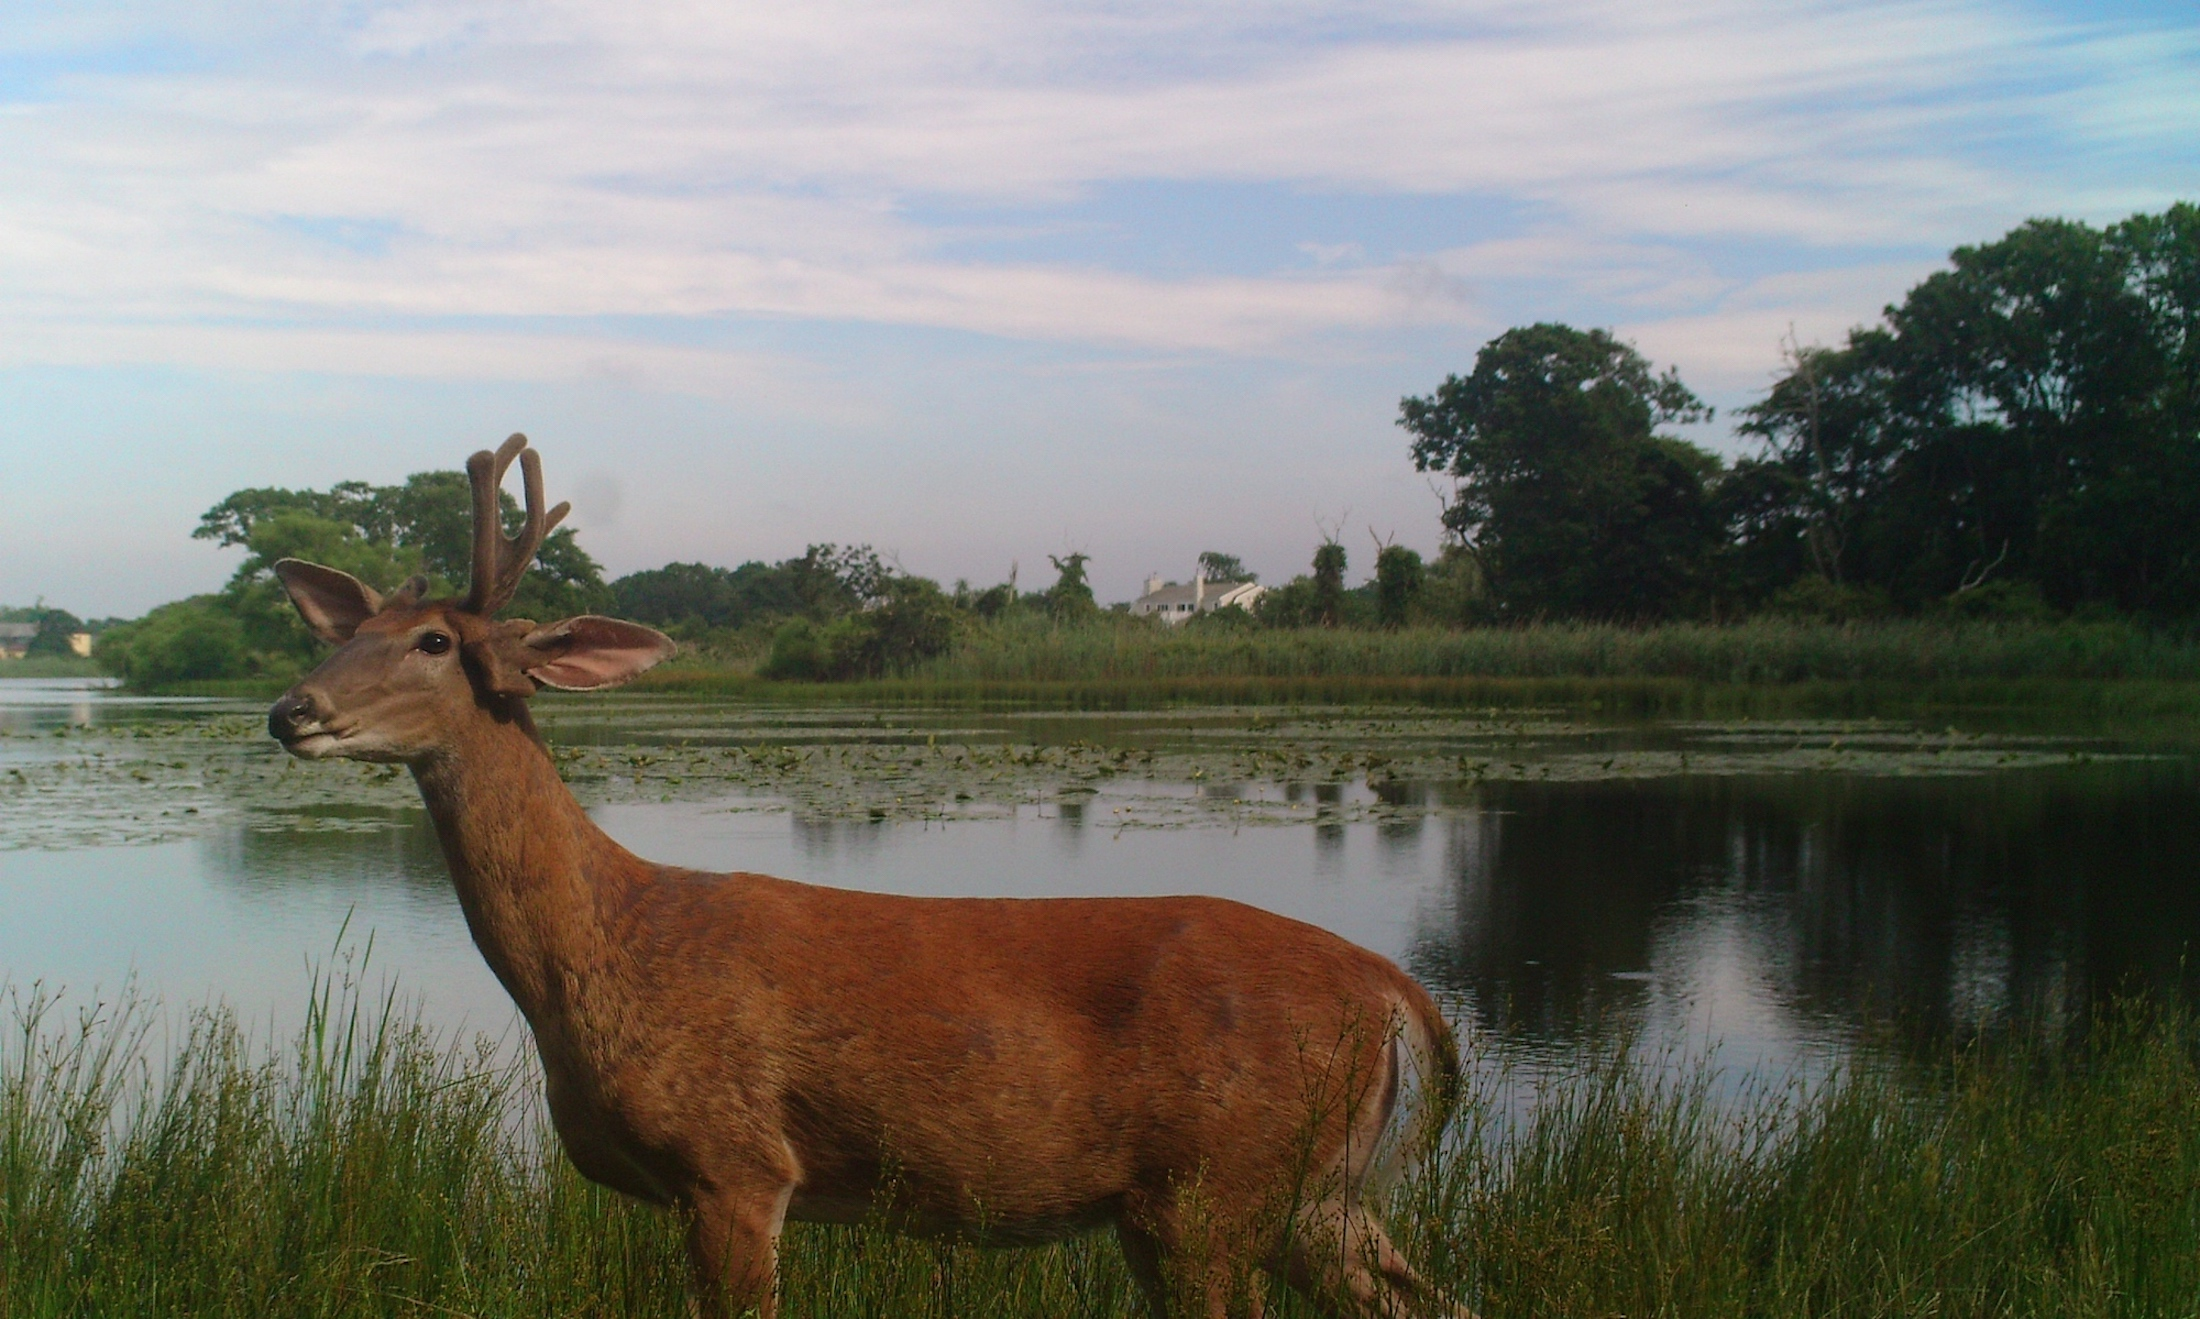 Trail cam deer at Poxy Pond